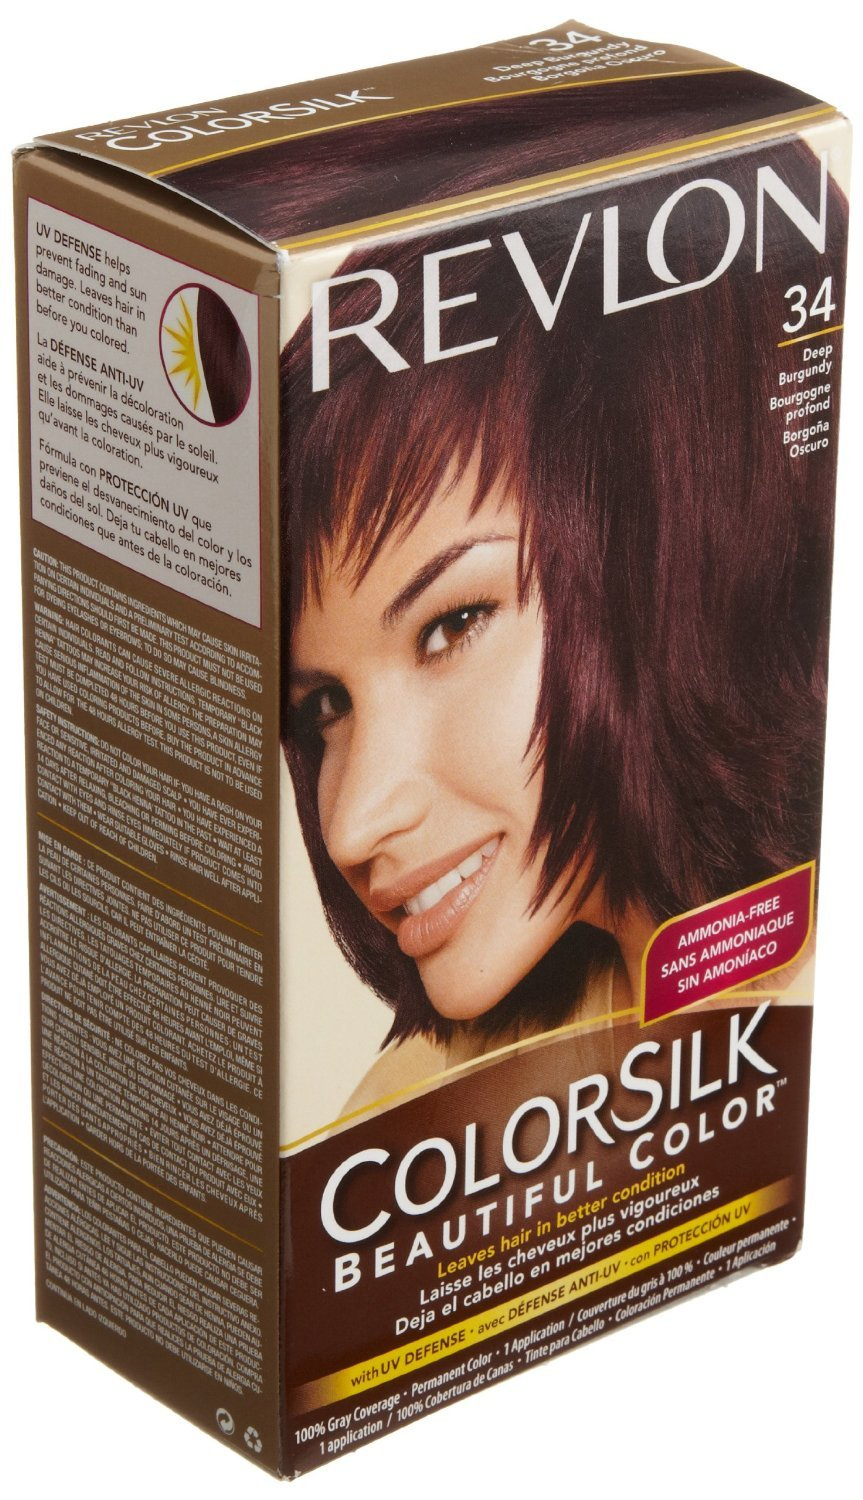 Revlon Colorsilk Beautiful Color for Unisex, 34 Deep Burgundy